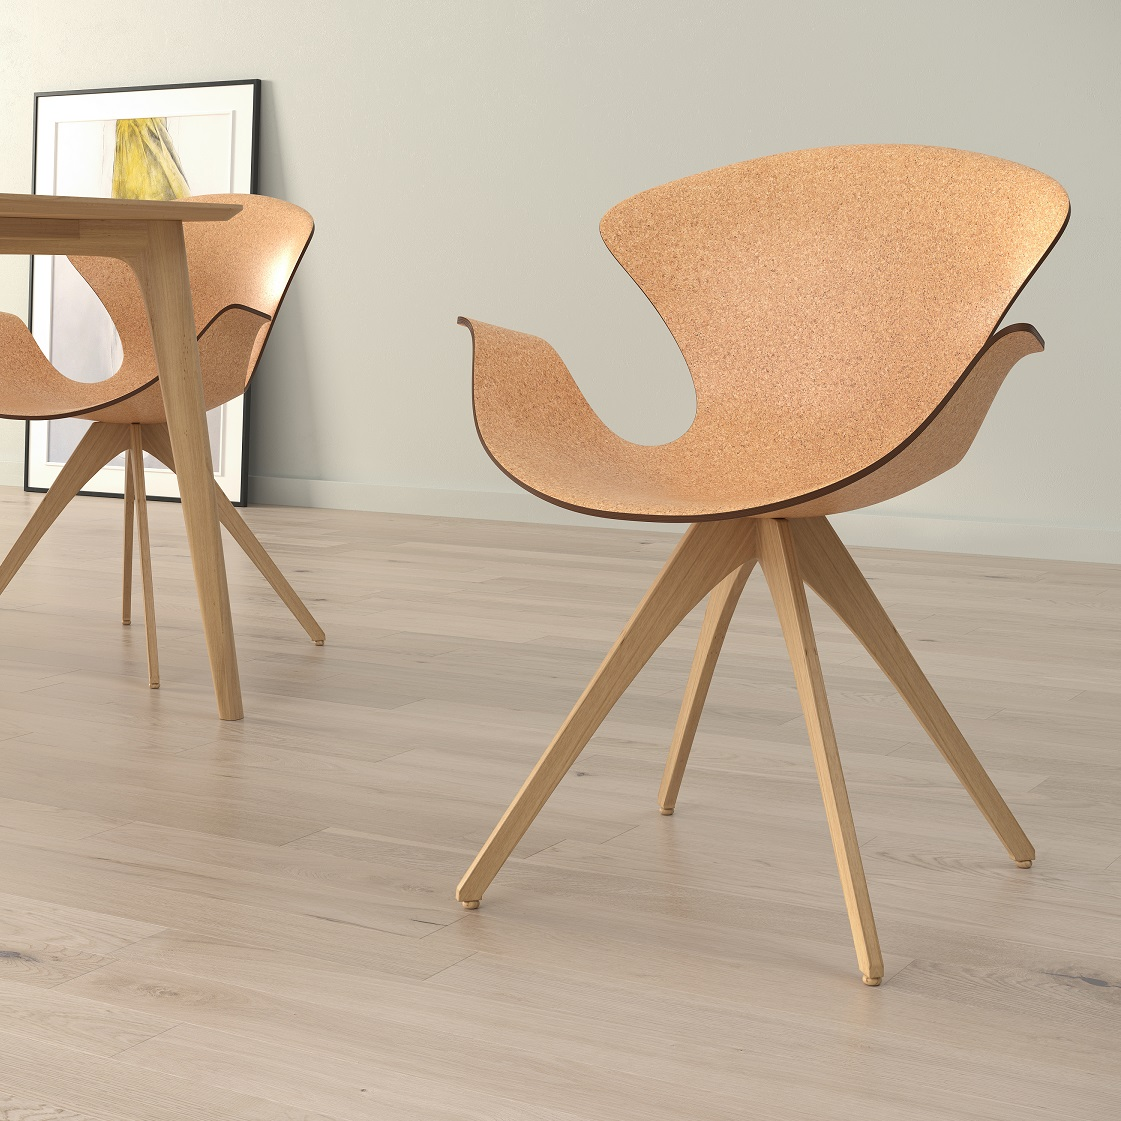 Cork-3D-Molding-Chair.jpg